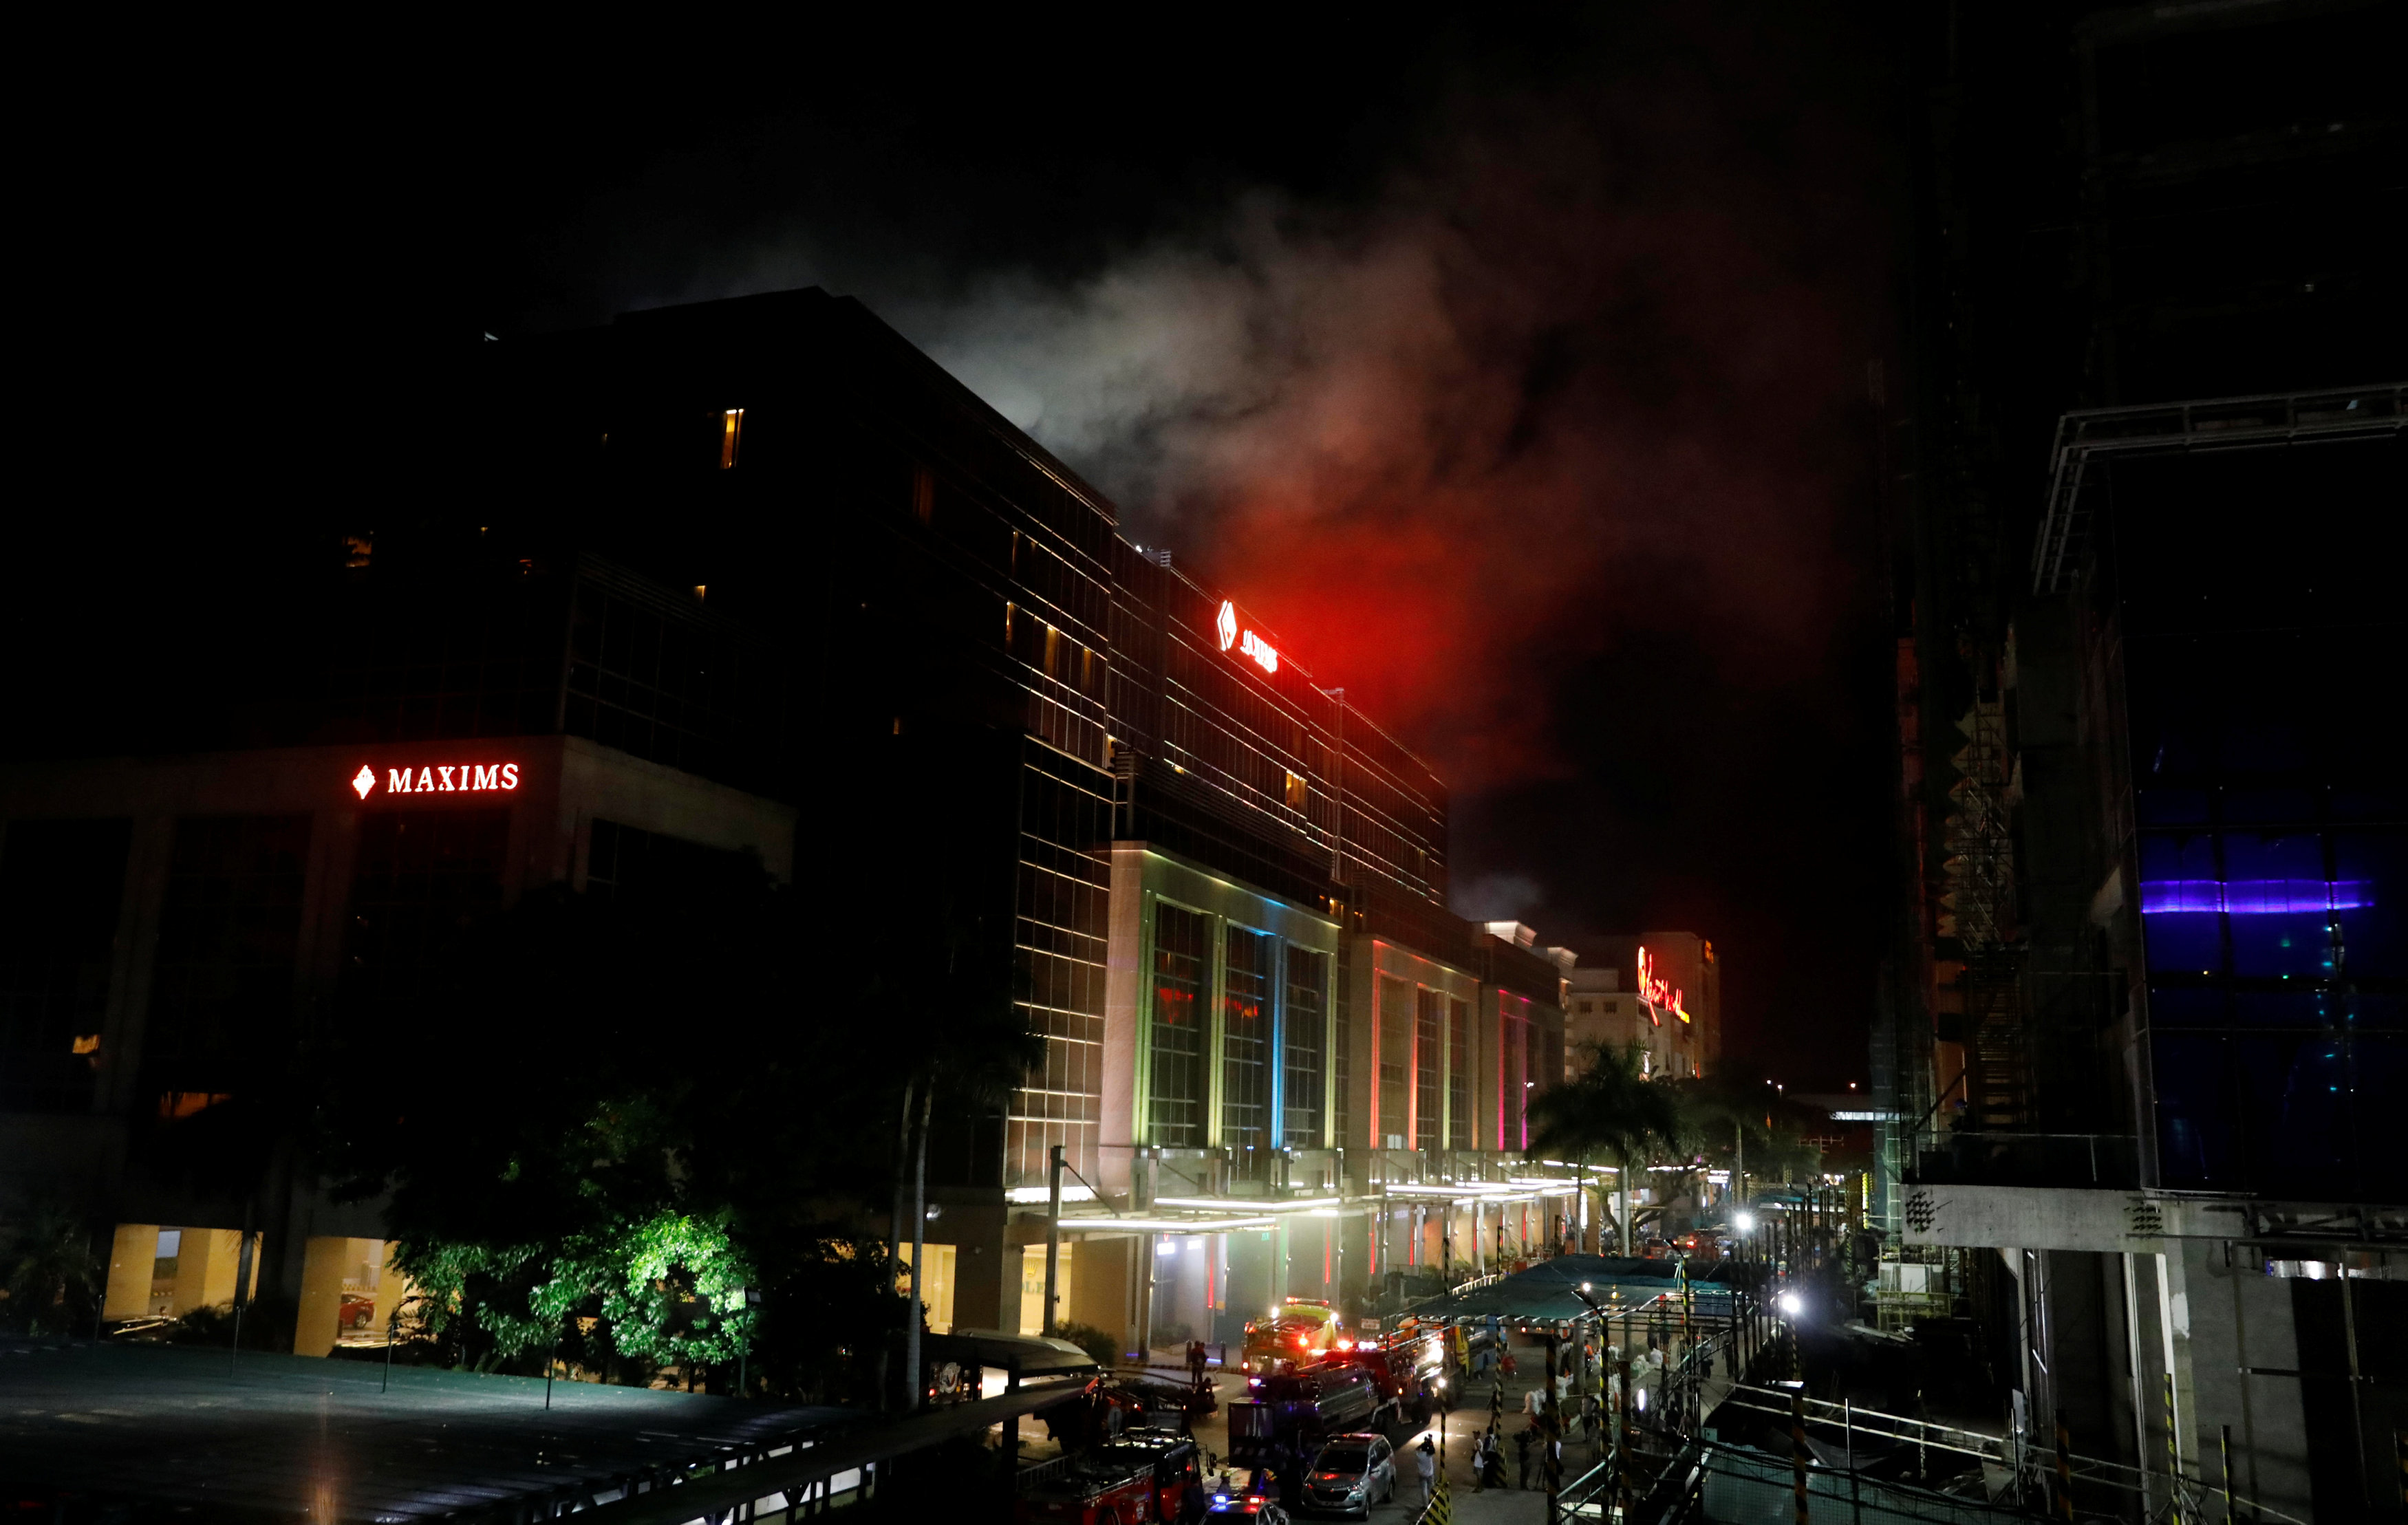 Smoke billows from the Resorts World building in Pasay City, Metro Manila, Philippines on June 2, 2017. (REUTERS/Erik De Castro)